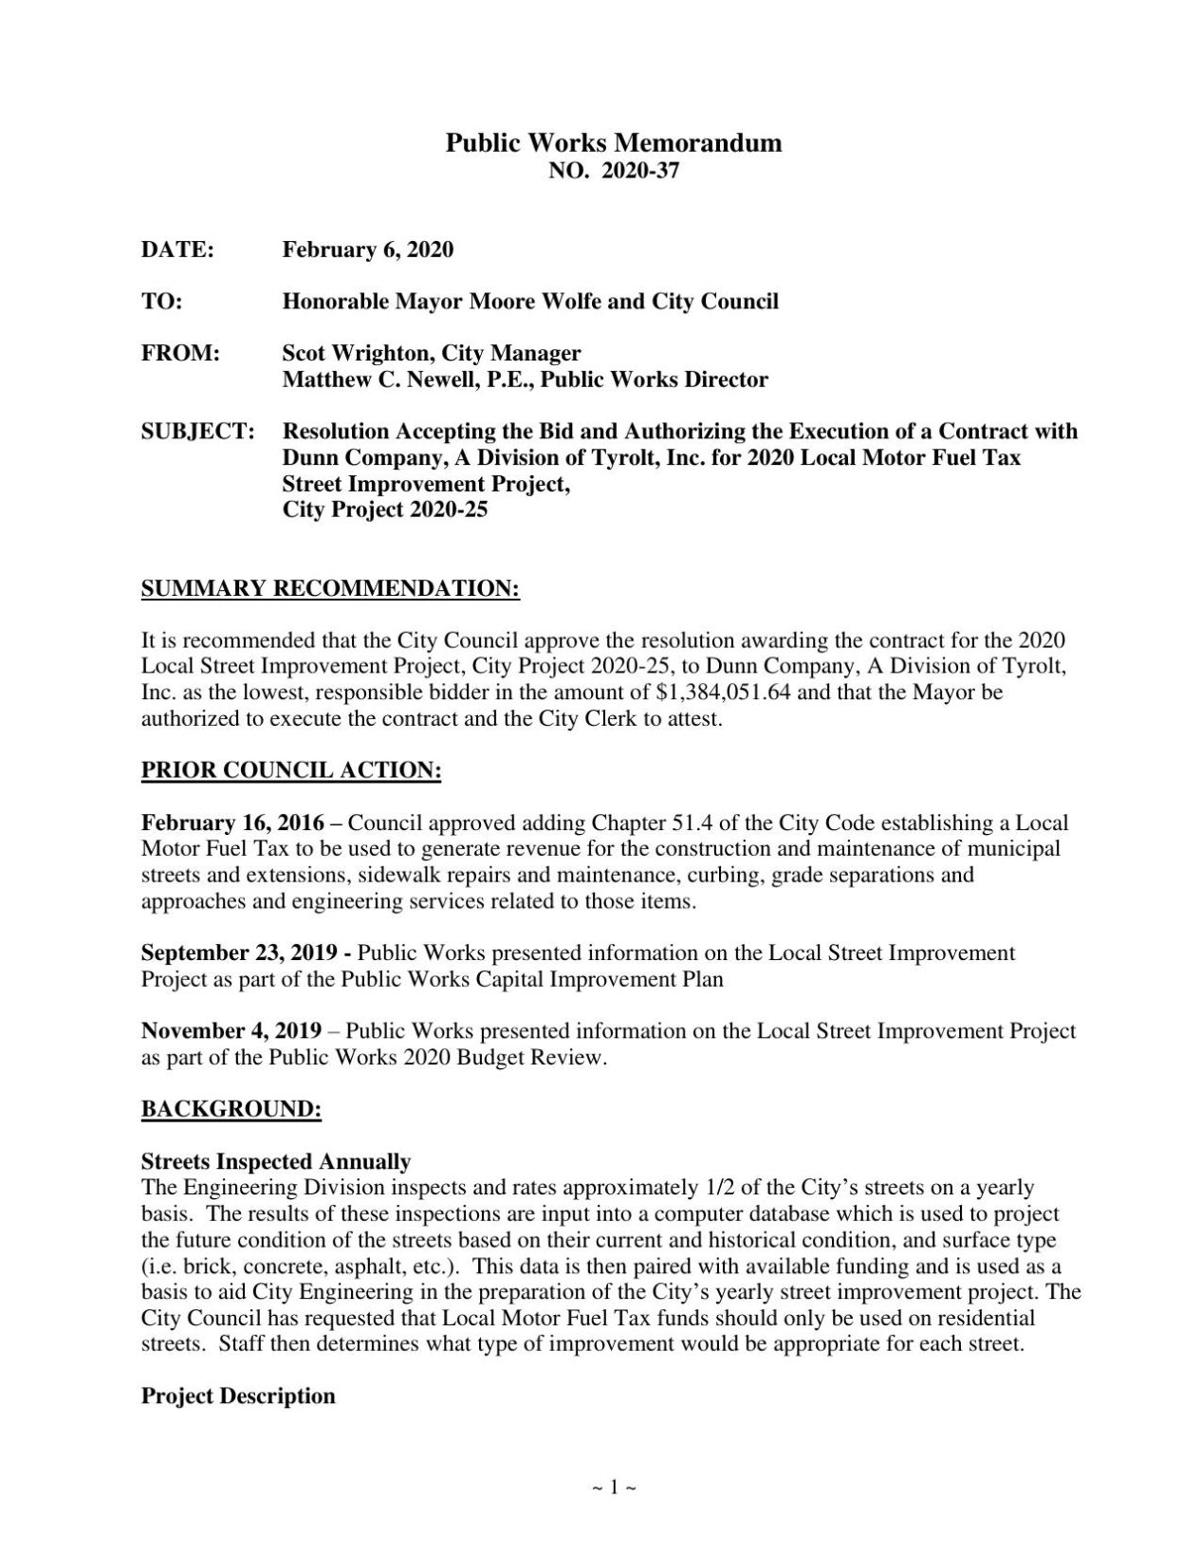 Memo for Awarding Contract for Street Improvement